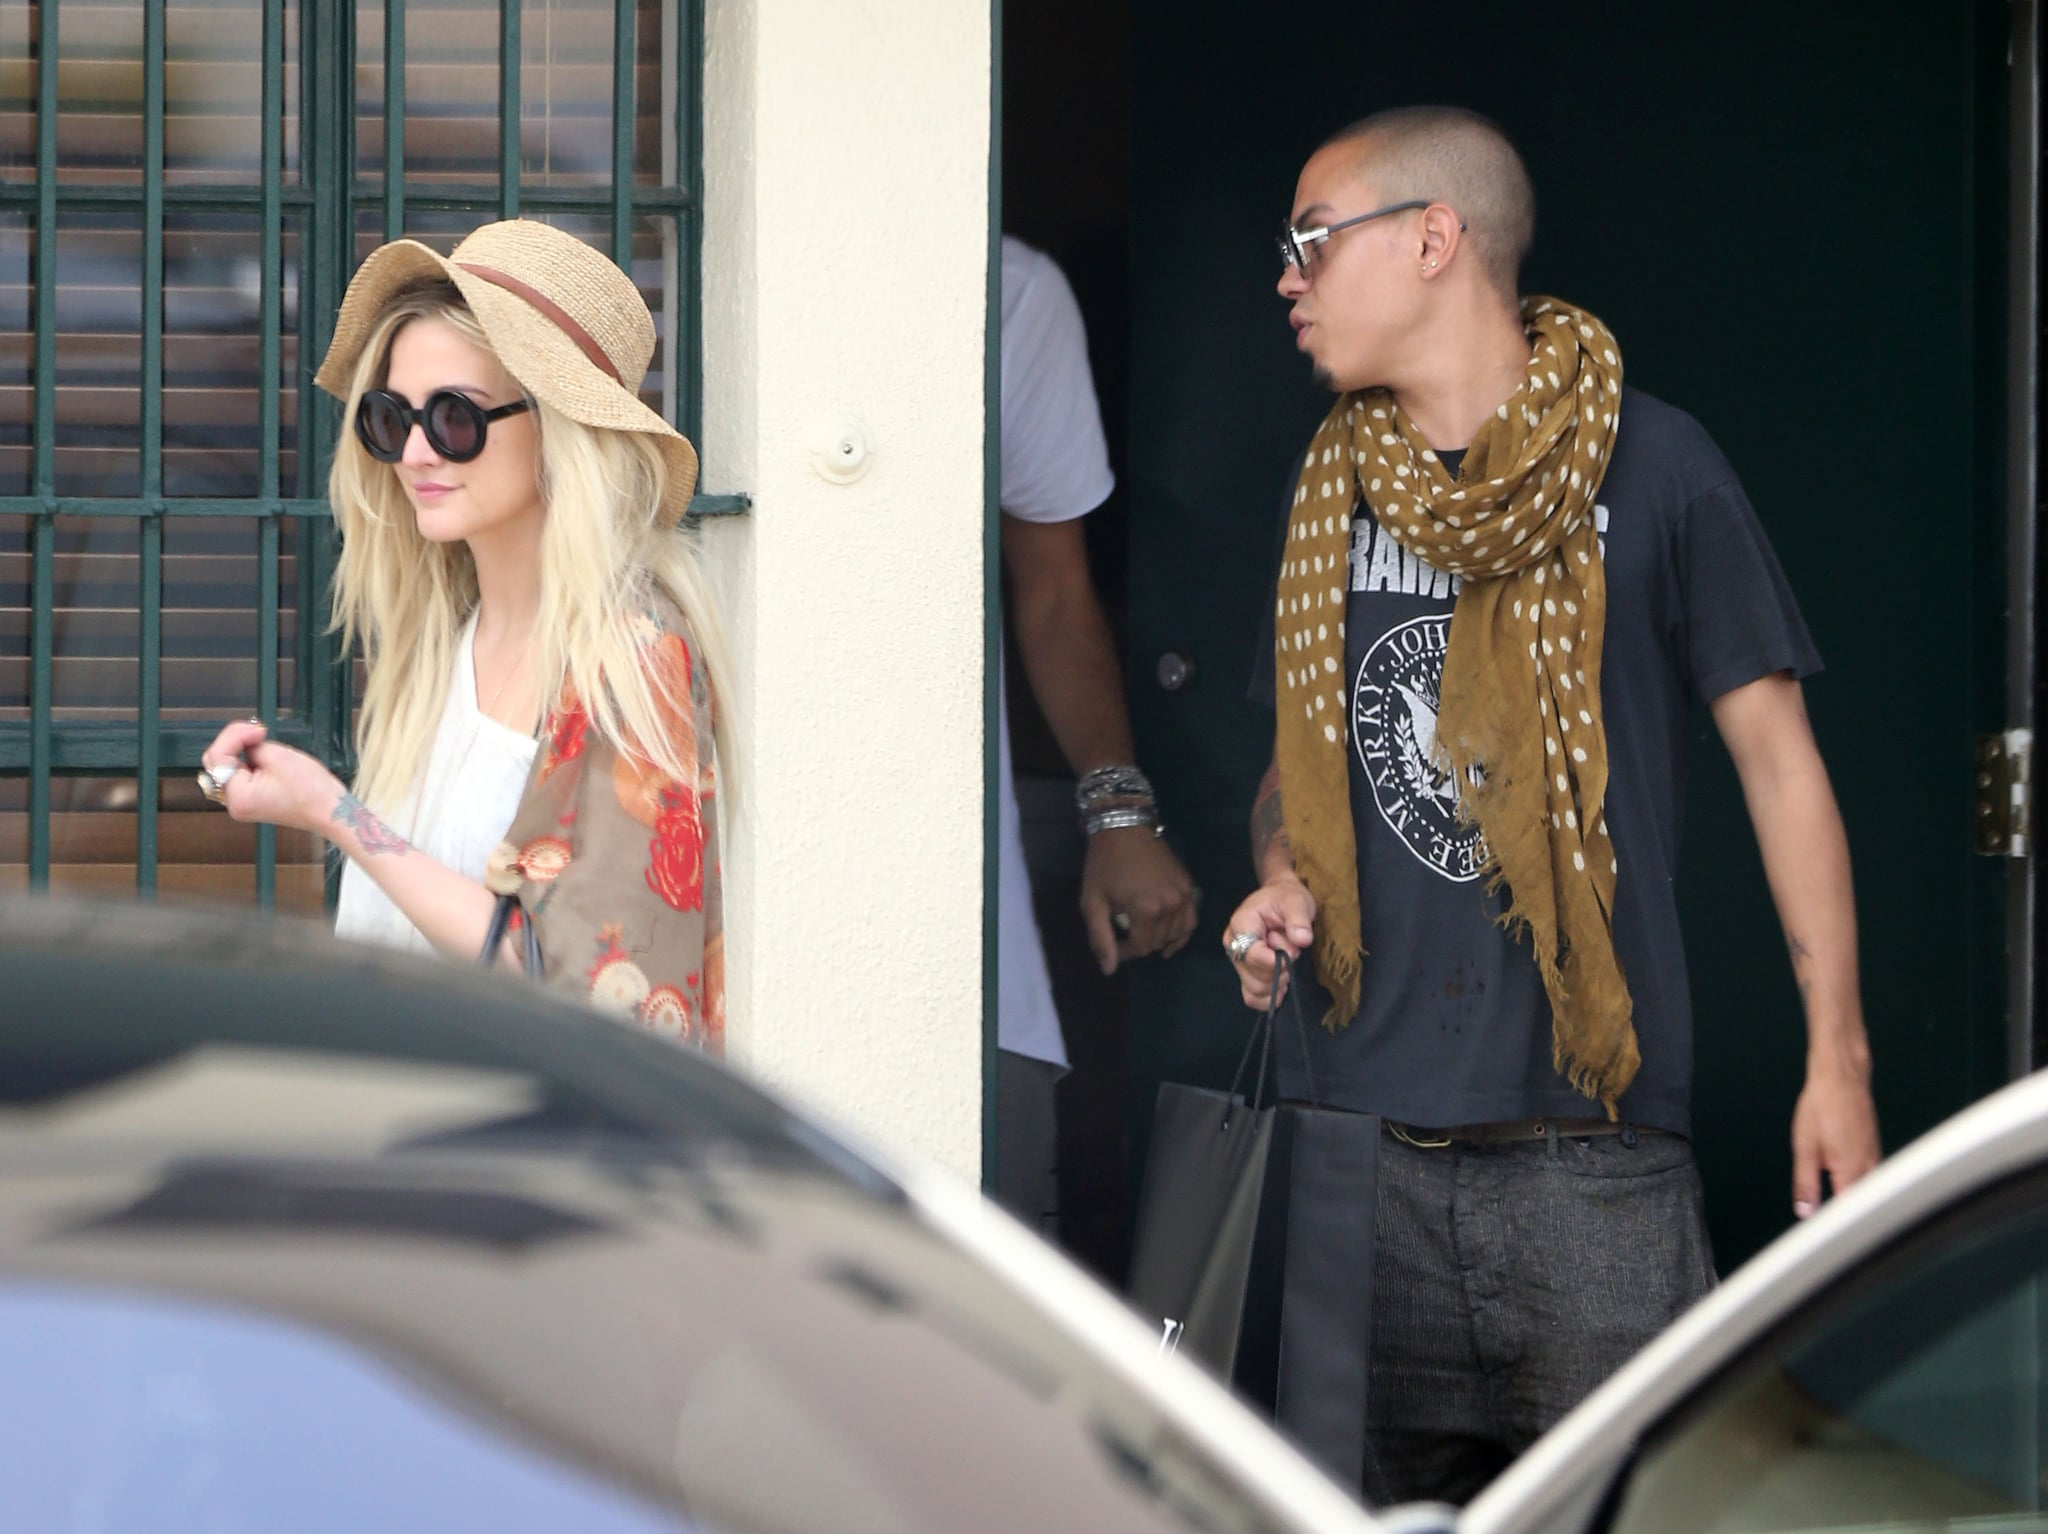 Ashlee Simpson and Evan Ross grabbed lunch together.